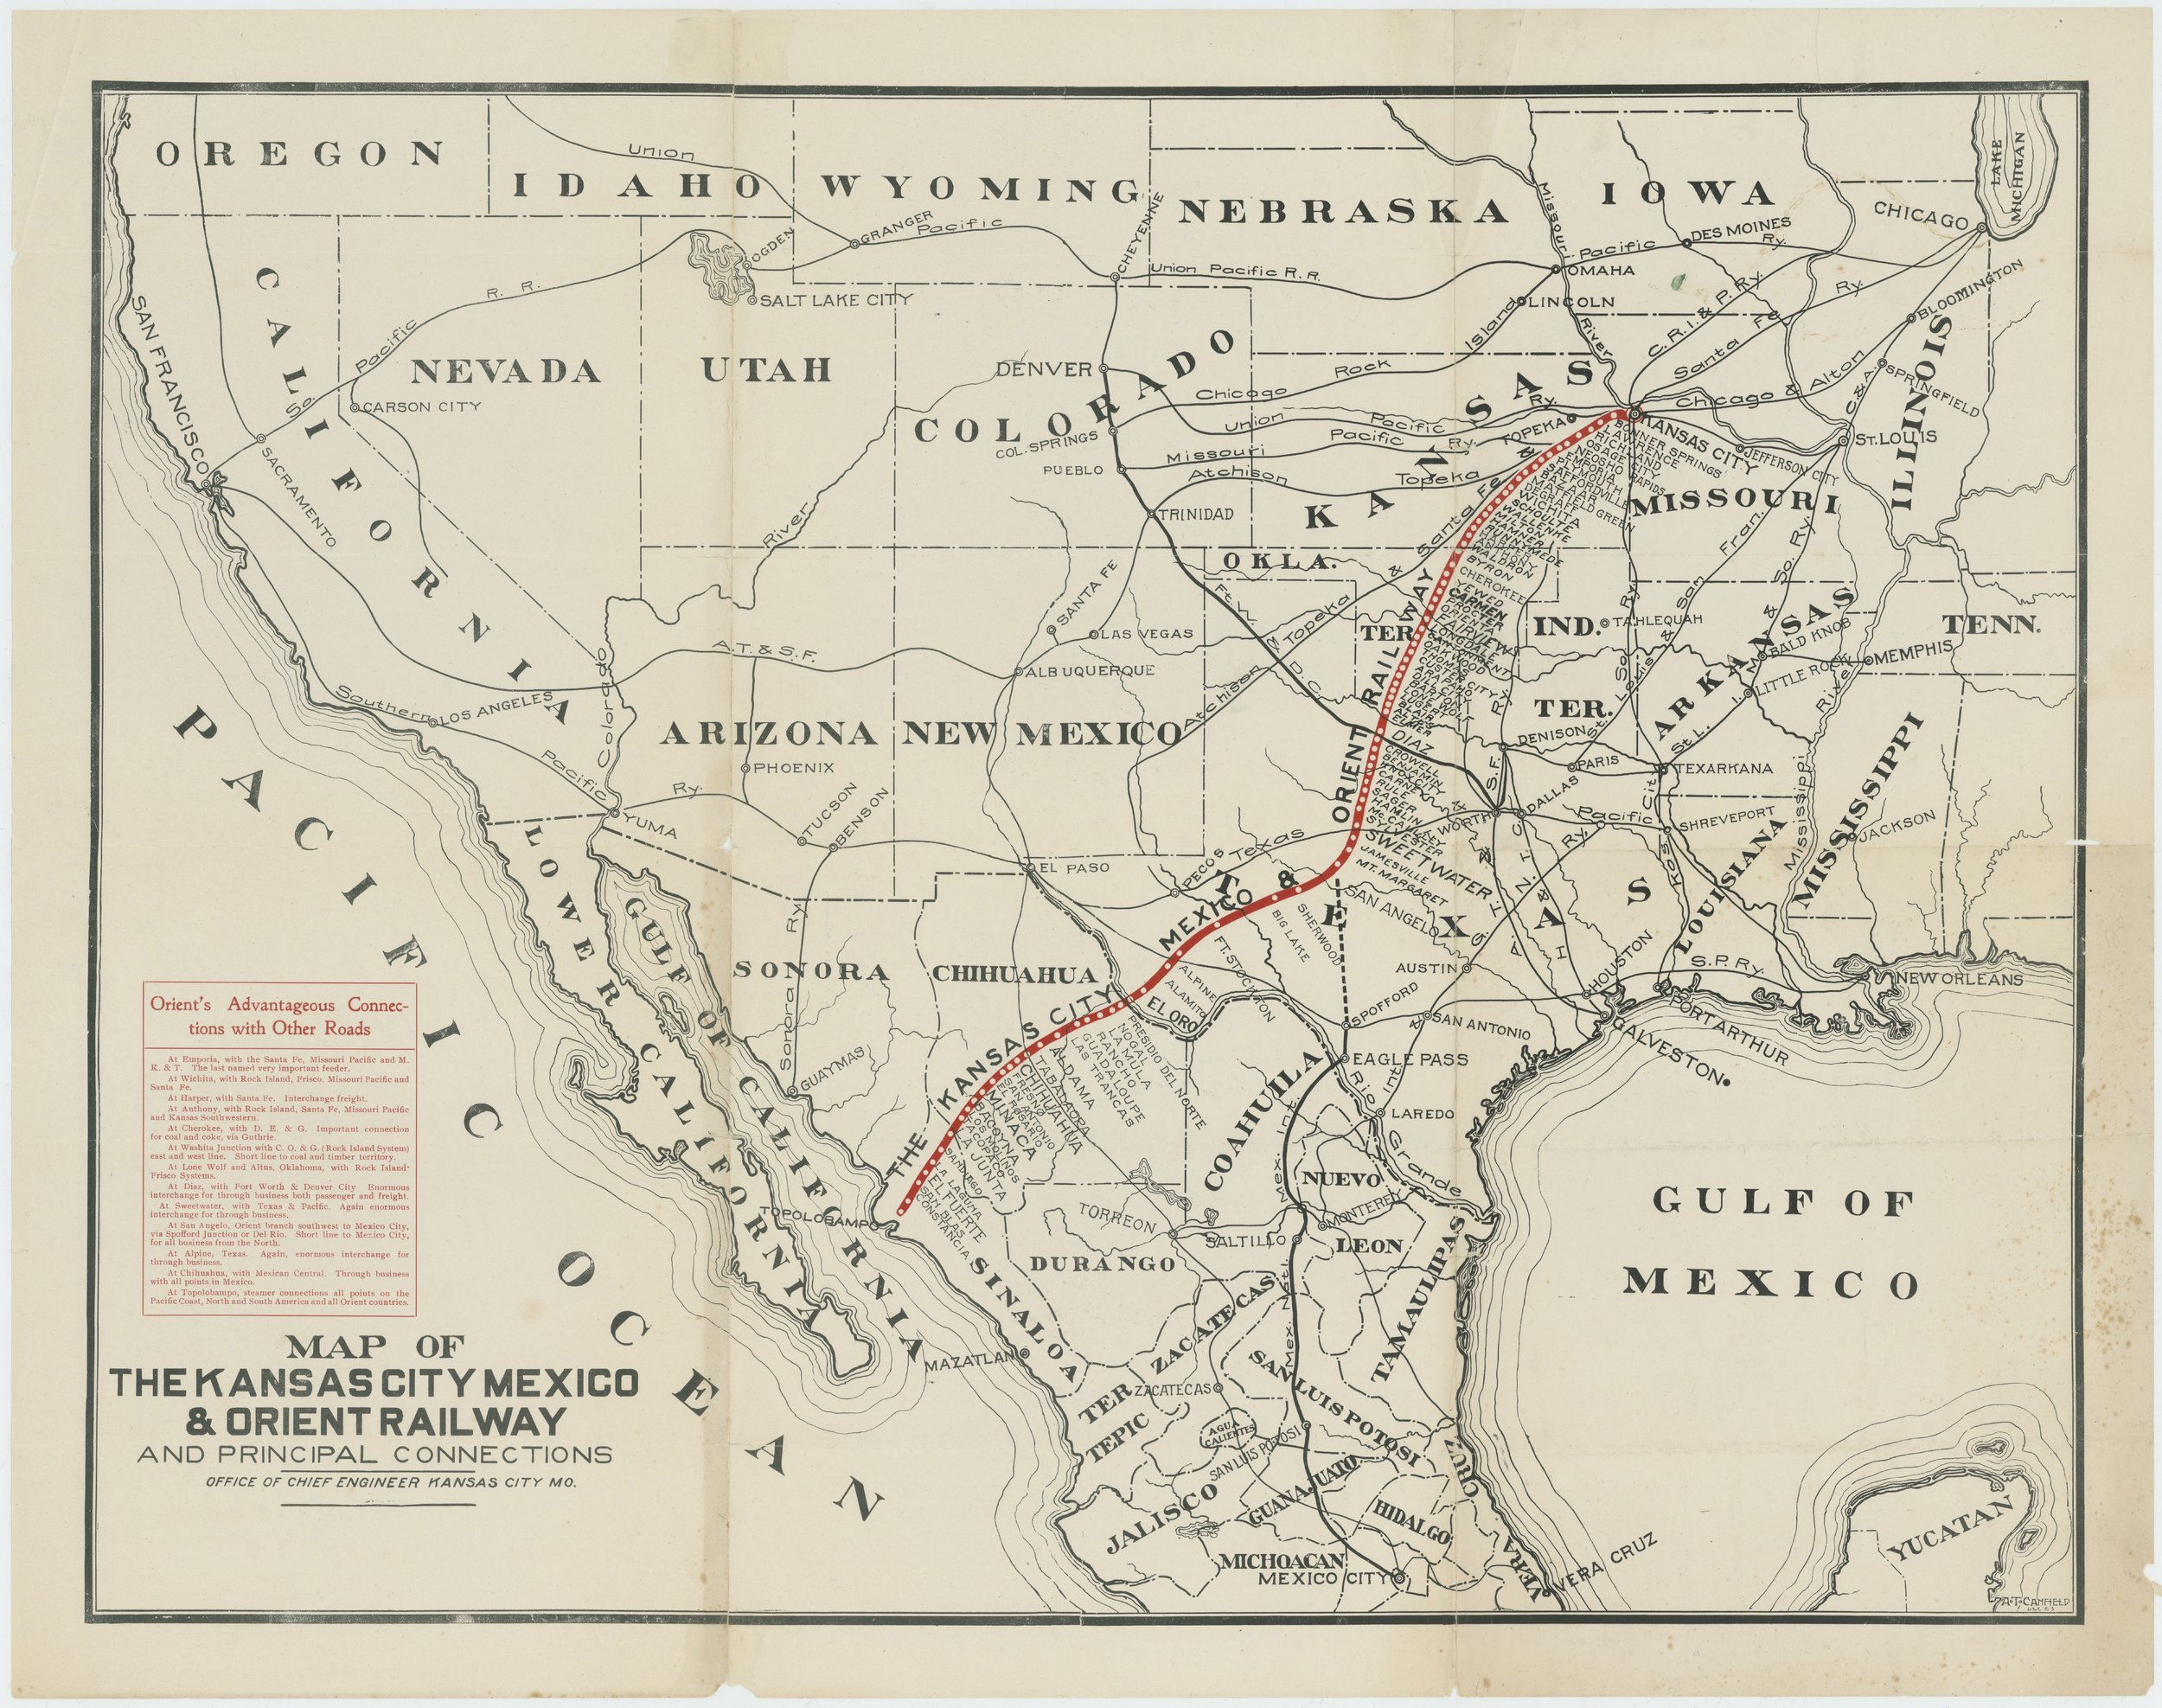 Map of the Kansas City, Mexico & Orient Railway and principal connections - 1